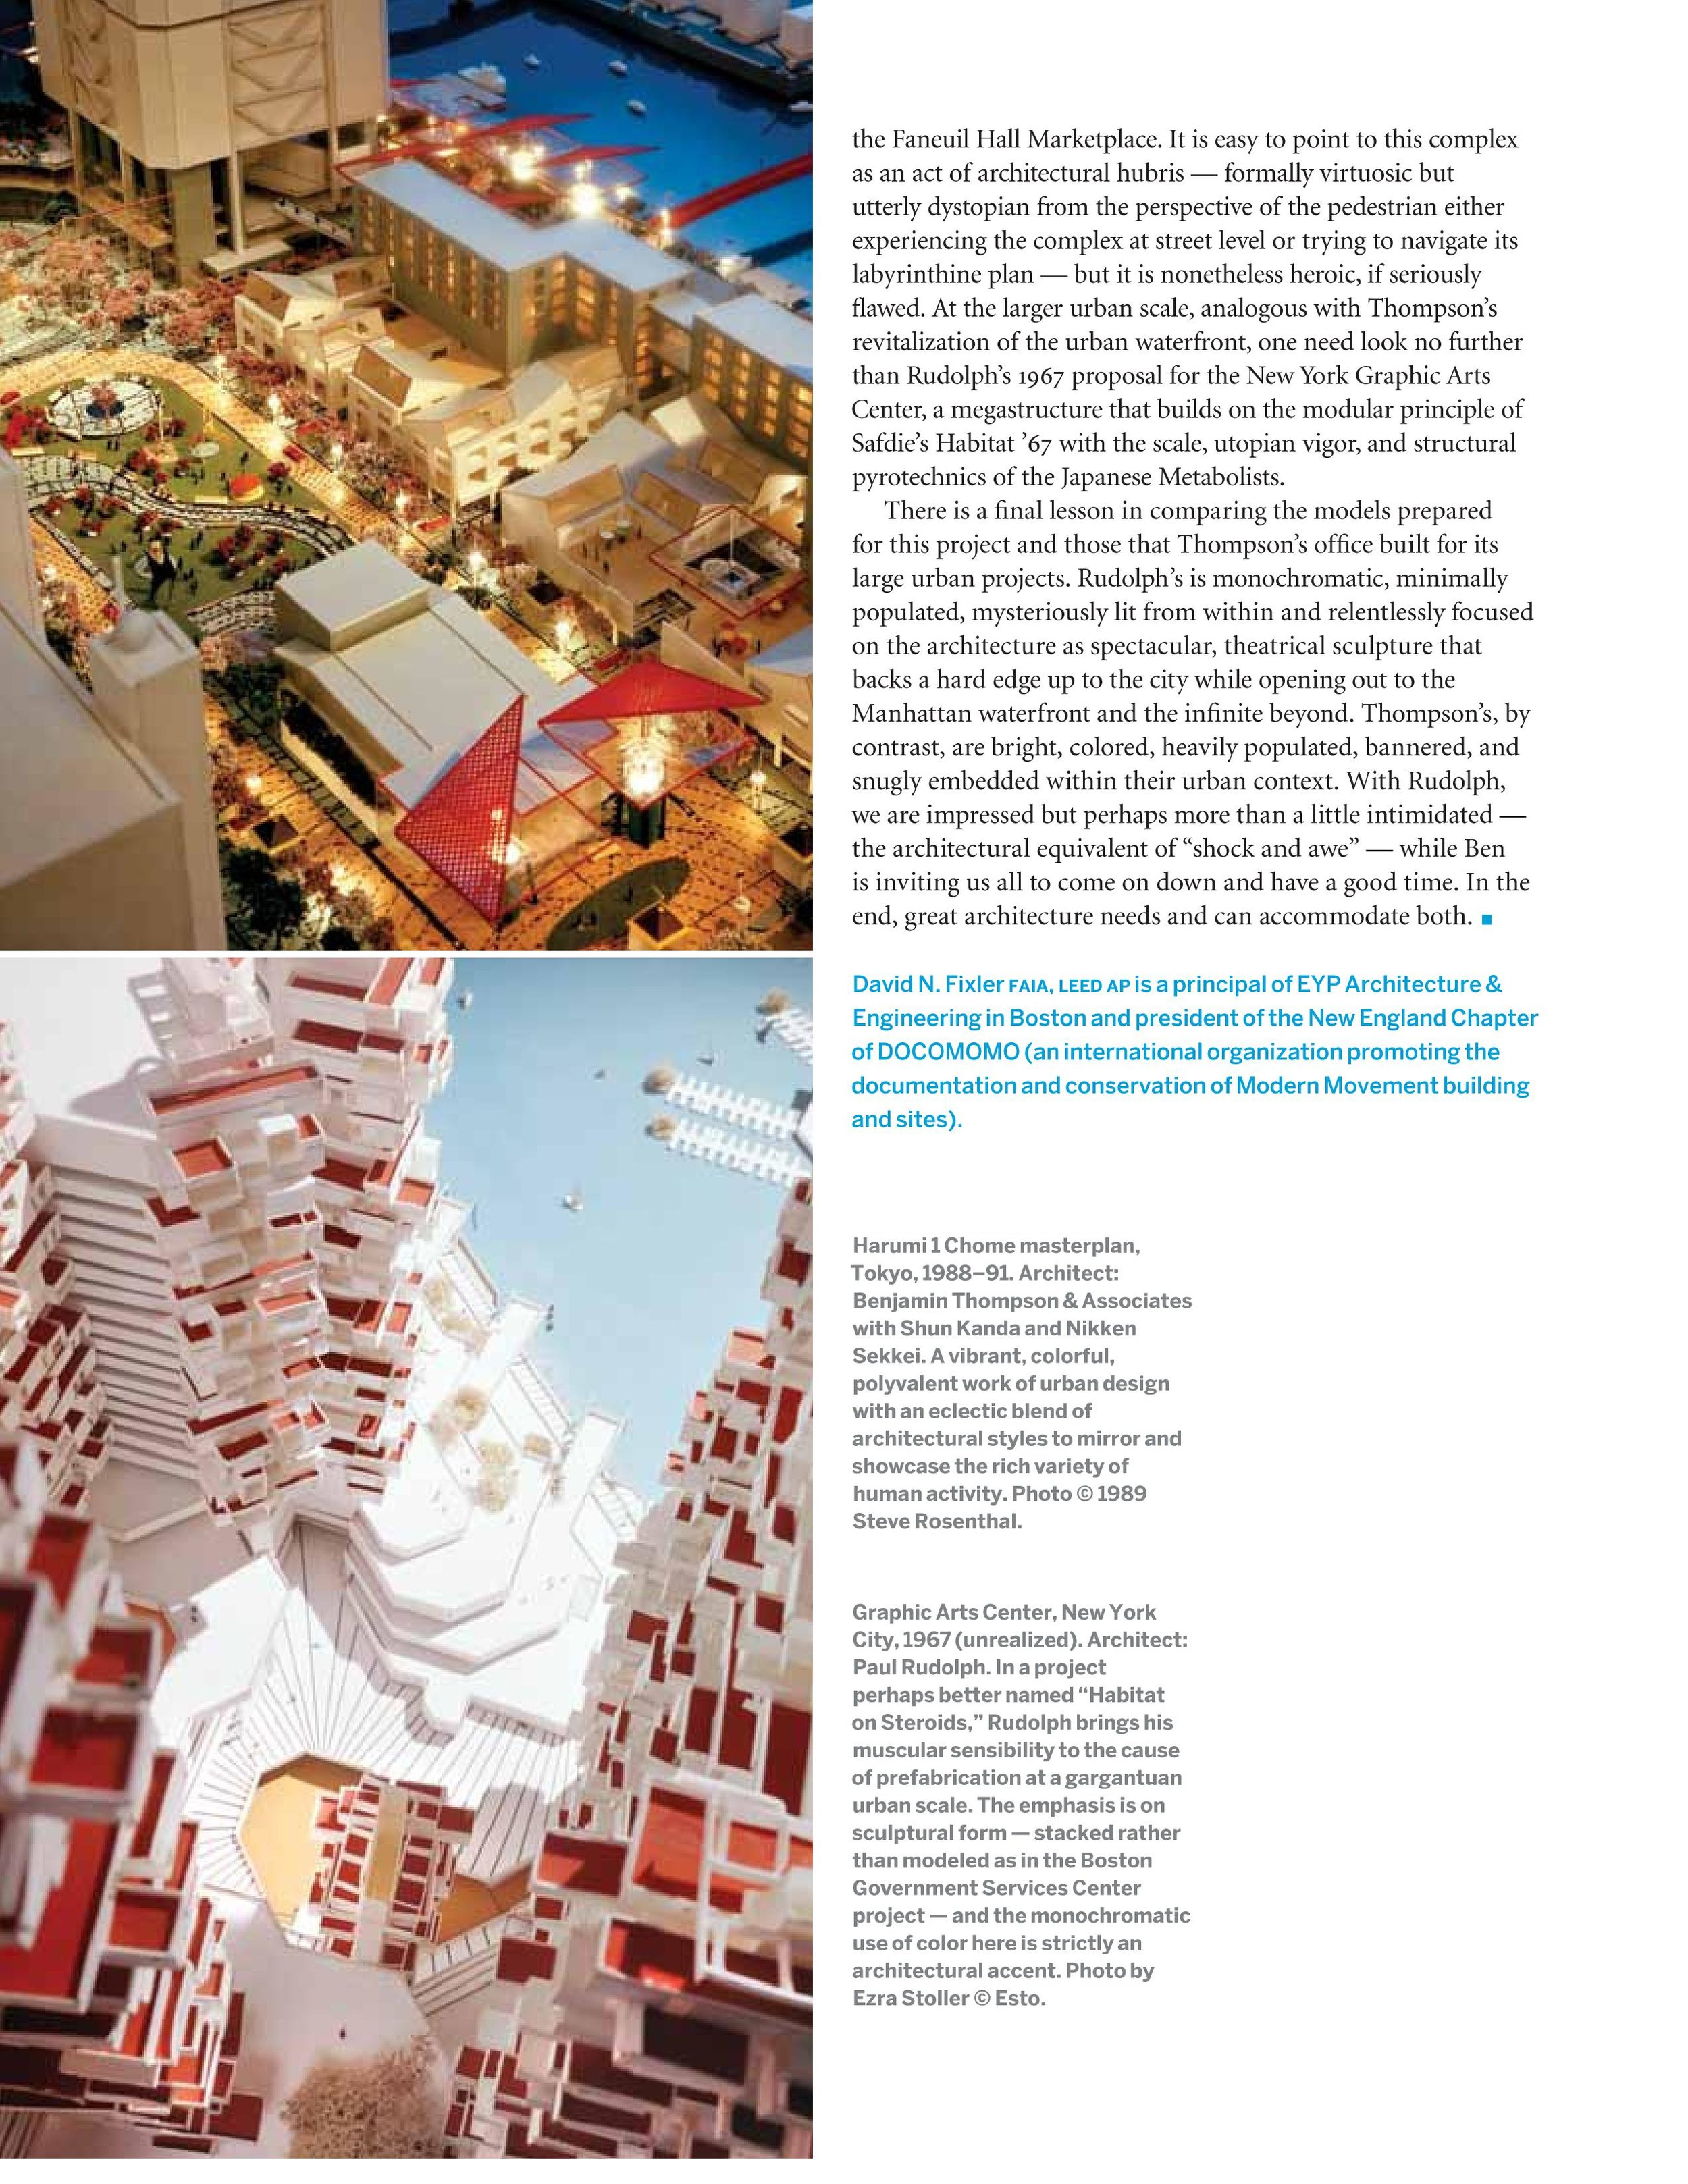 "The two approaches, of Thompson and Rudolph, are embodied in architectural models from each, which are depicted in the article.    Image: a page from the article, ""Ben & Paul"" by David N. Fixler, in the Spring,2011 issue of Architecture Boston magazine."